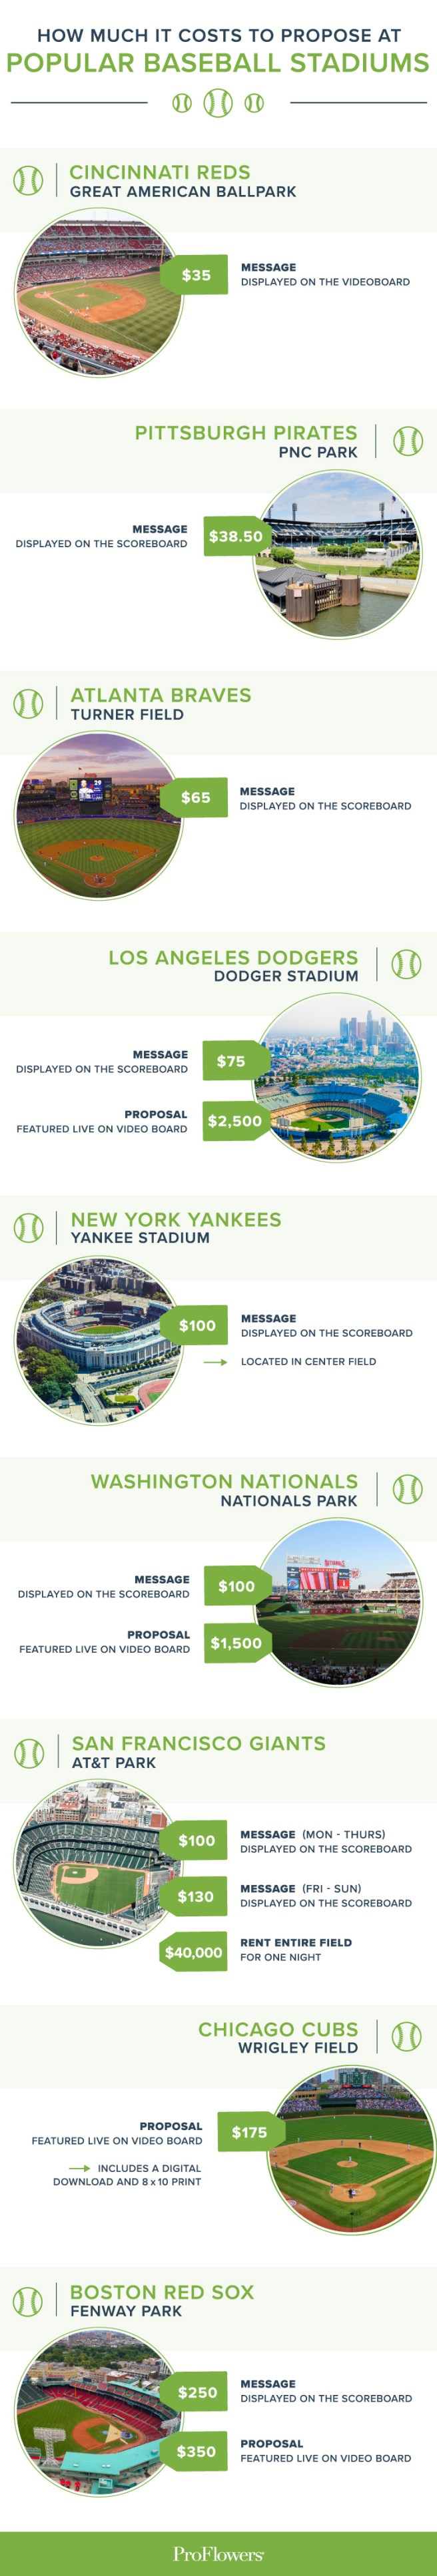 https://www.proflowers.com - cost of proposing at baseball stadiums